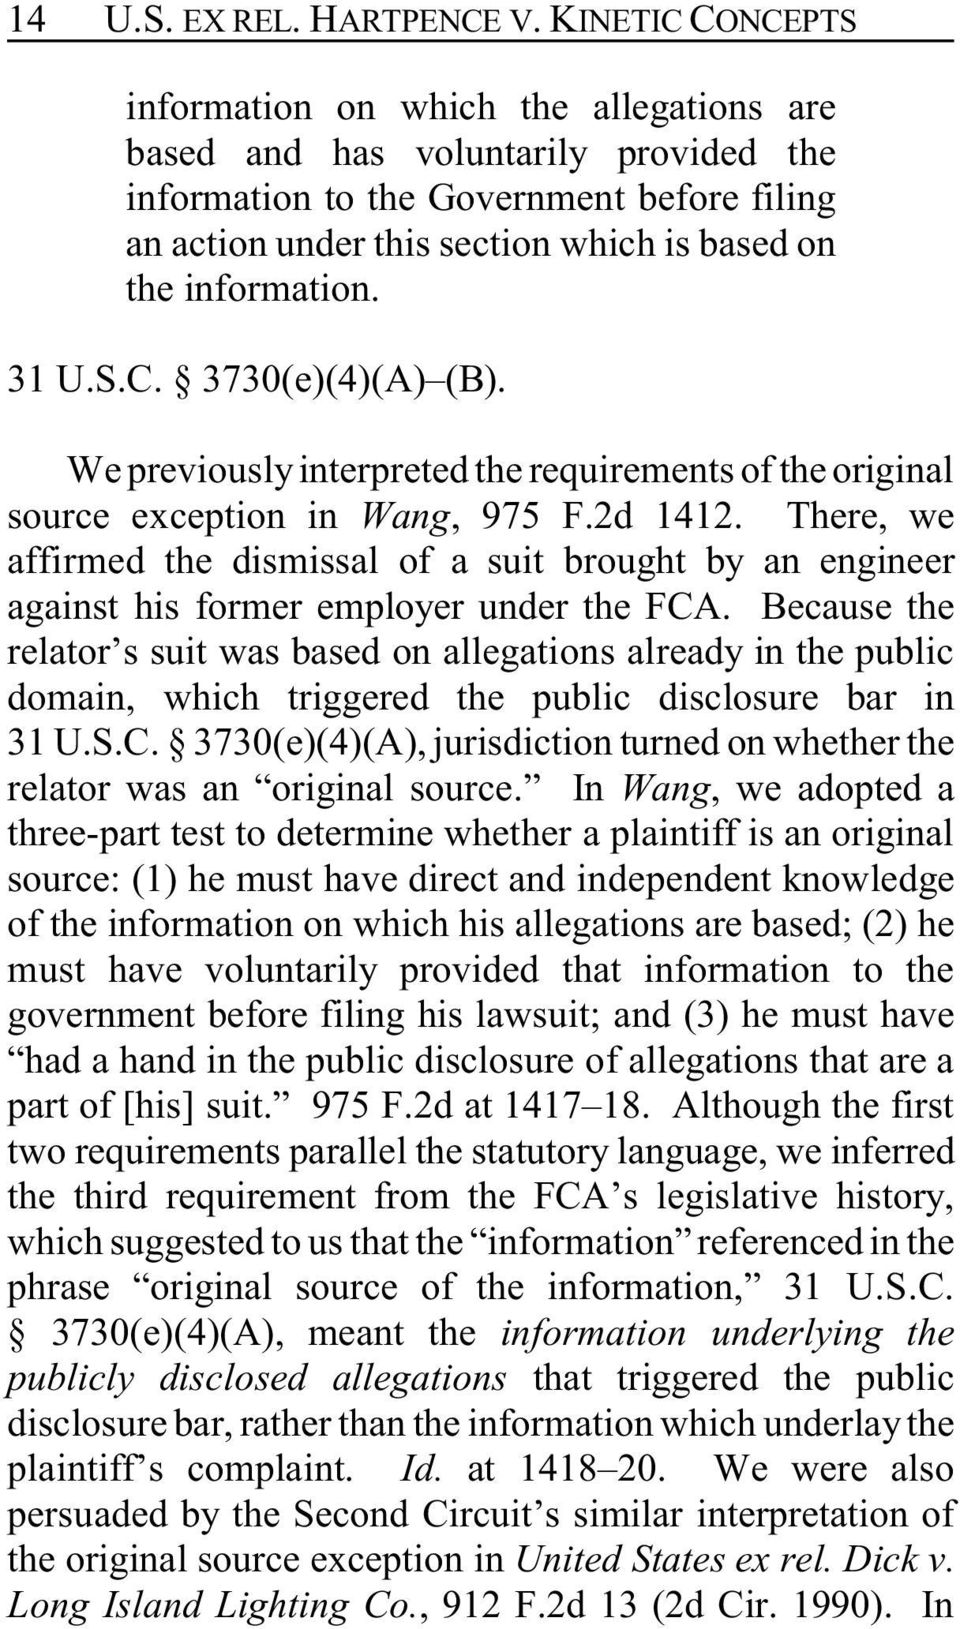 information. 31 U.S.C. 3730(e)(4)(A) (B). We previously interpreted the requirements of the original source exception in Wang, 975 F.2d 1412.